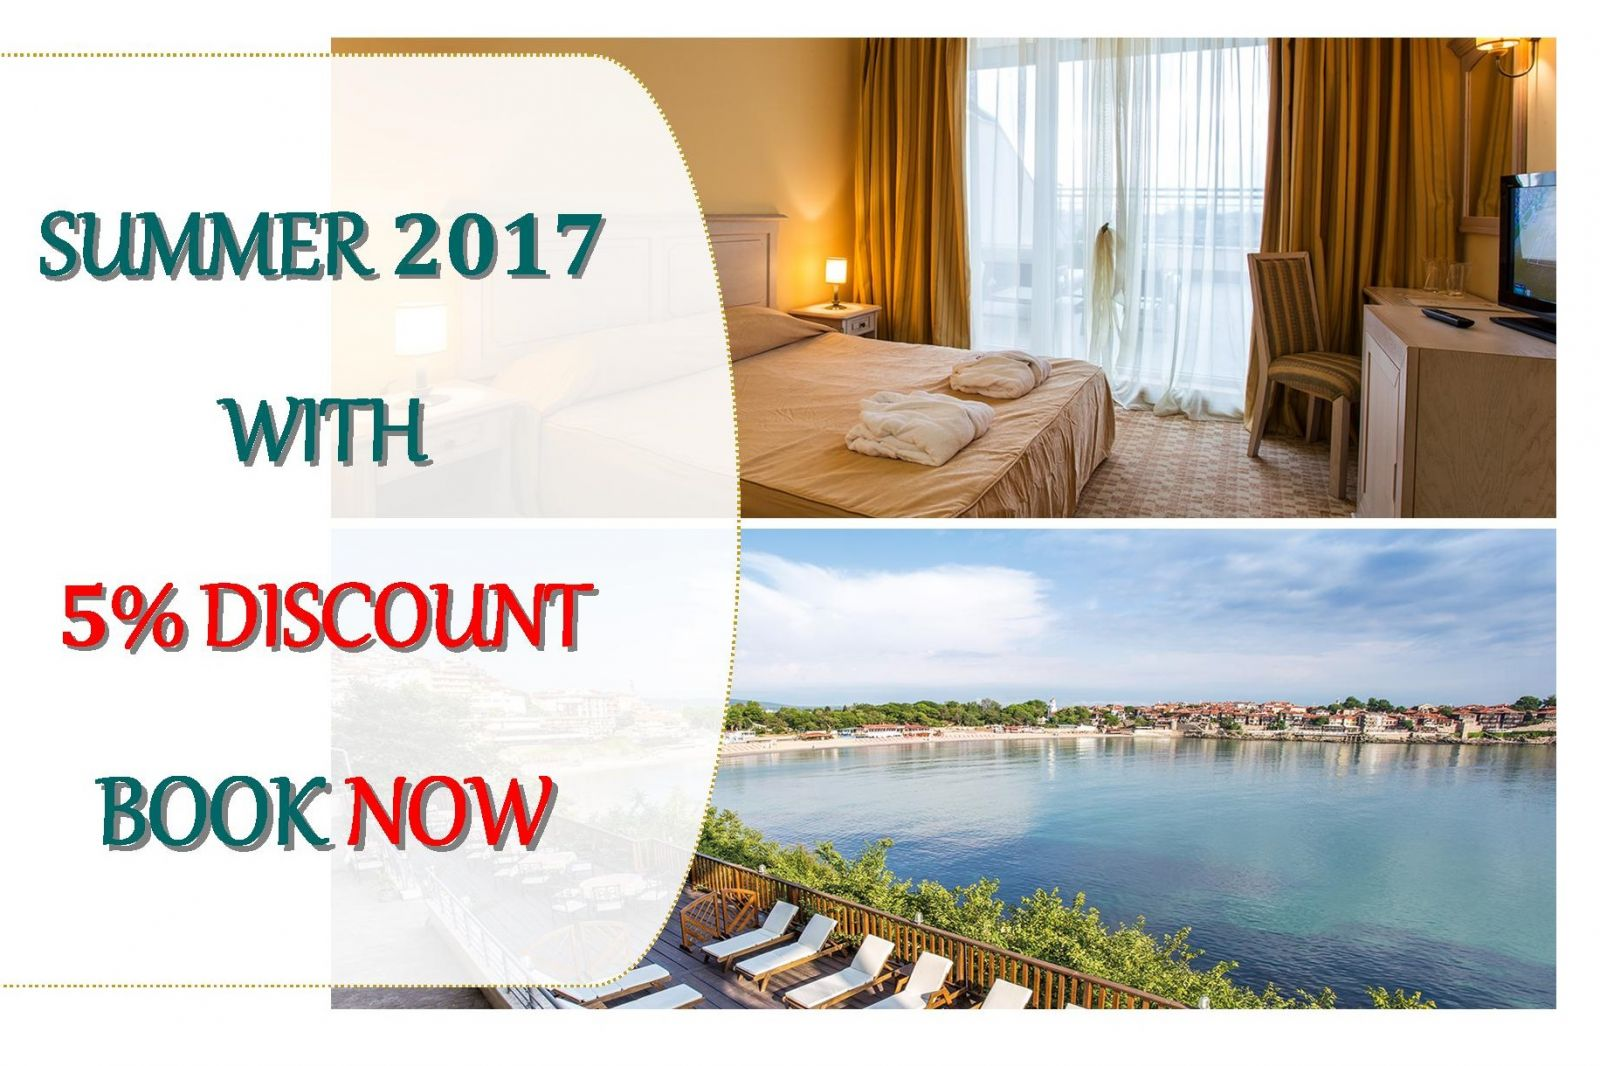 Summer 2017 with 5% discount, book now!